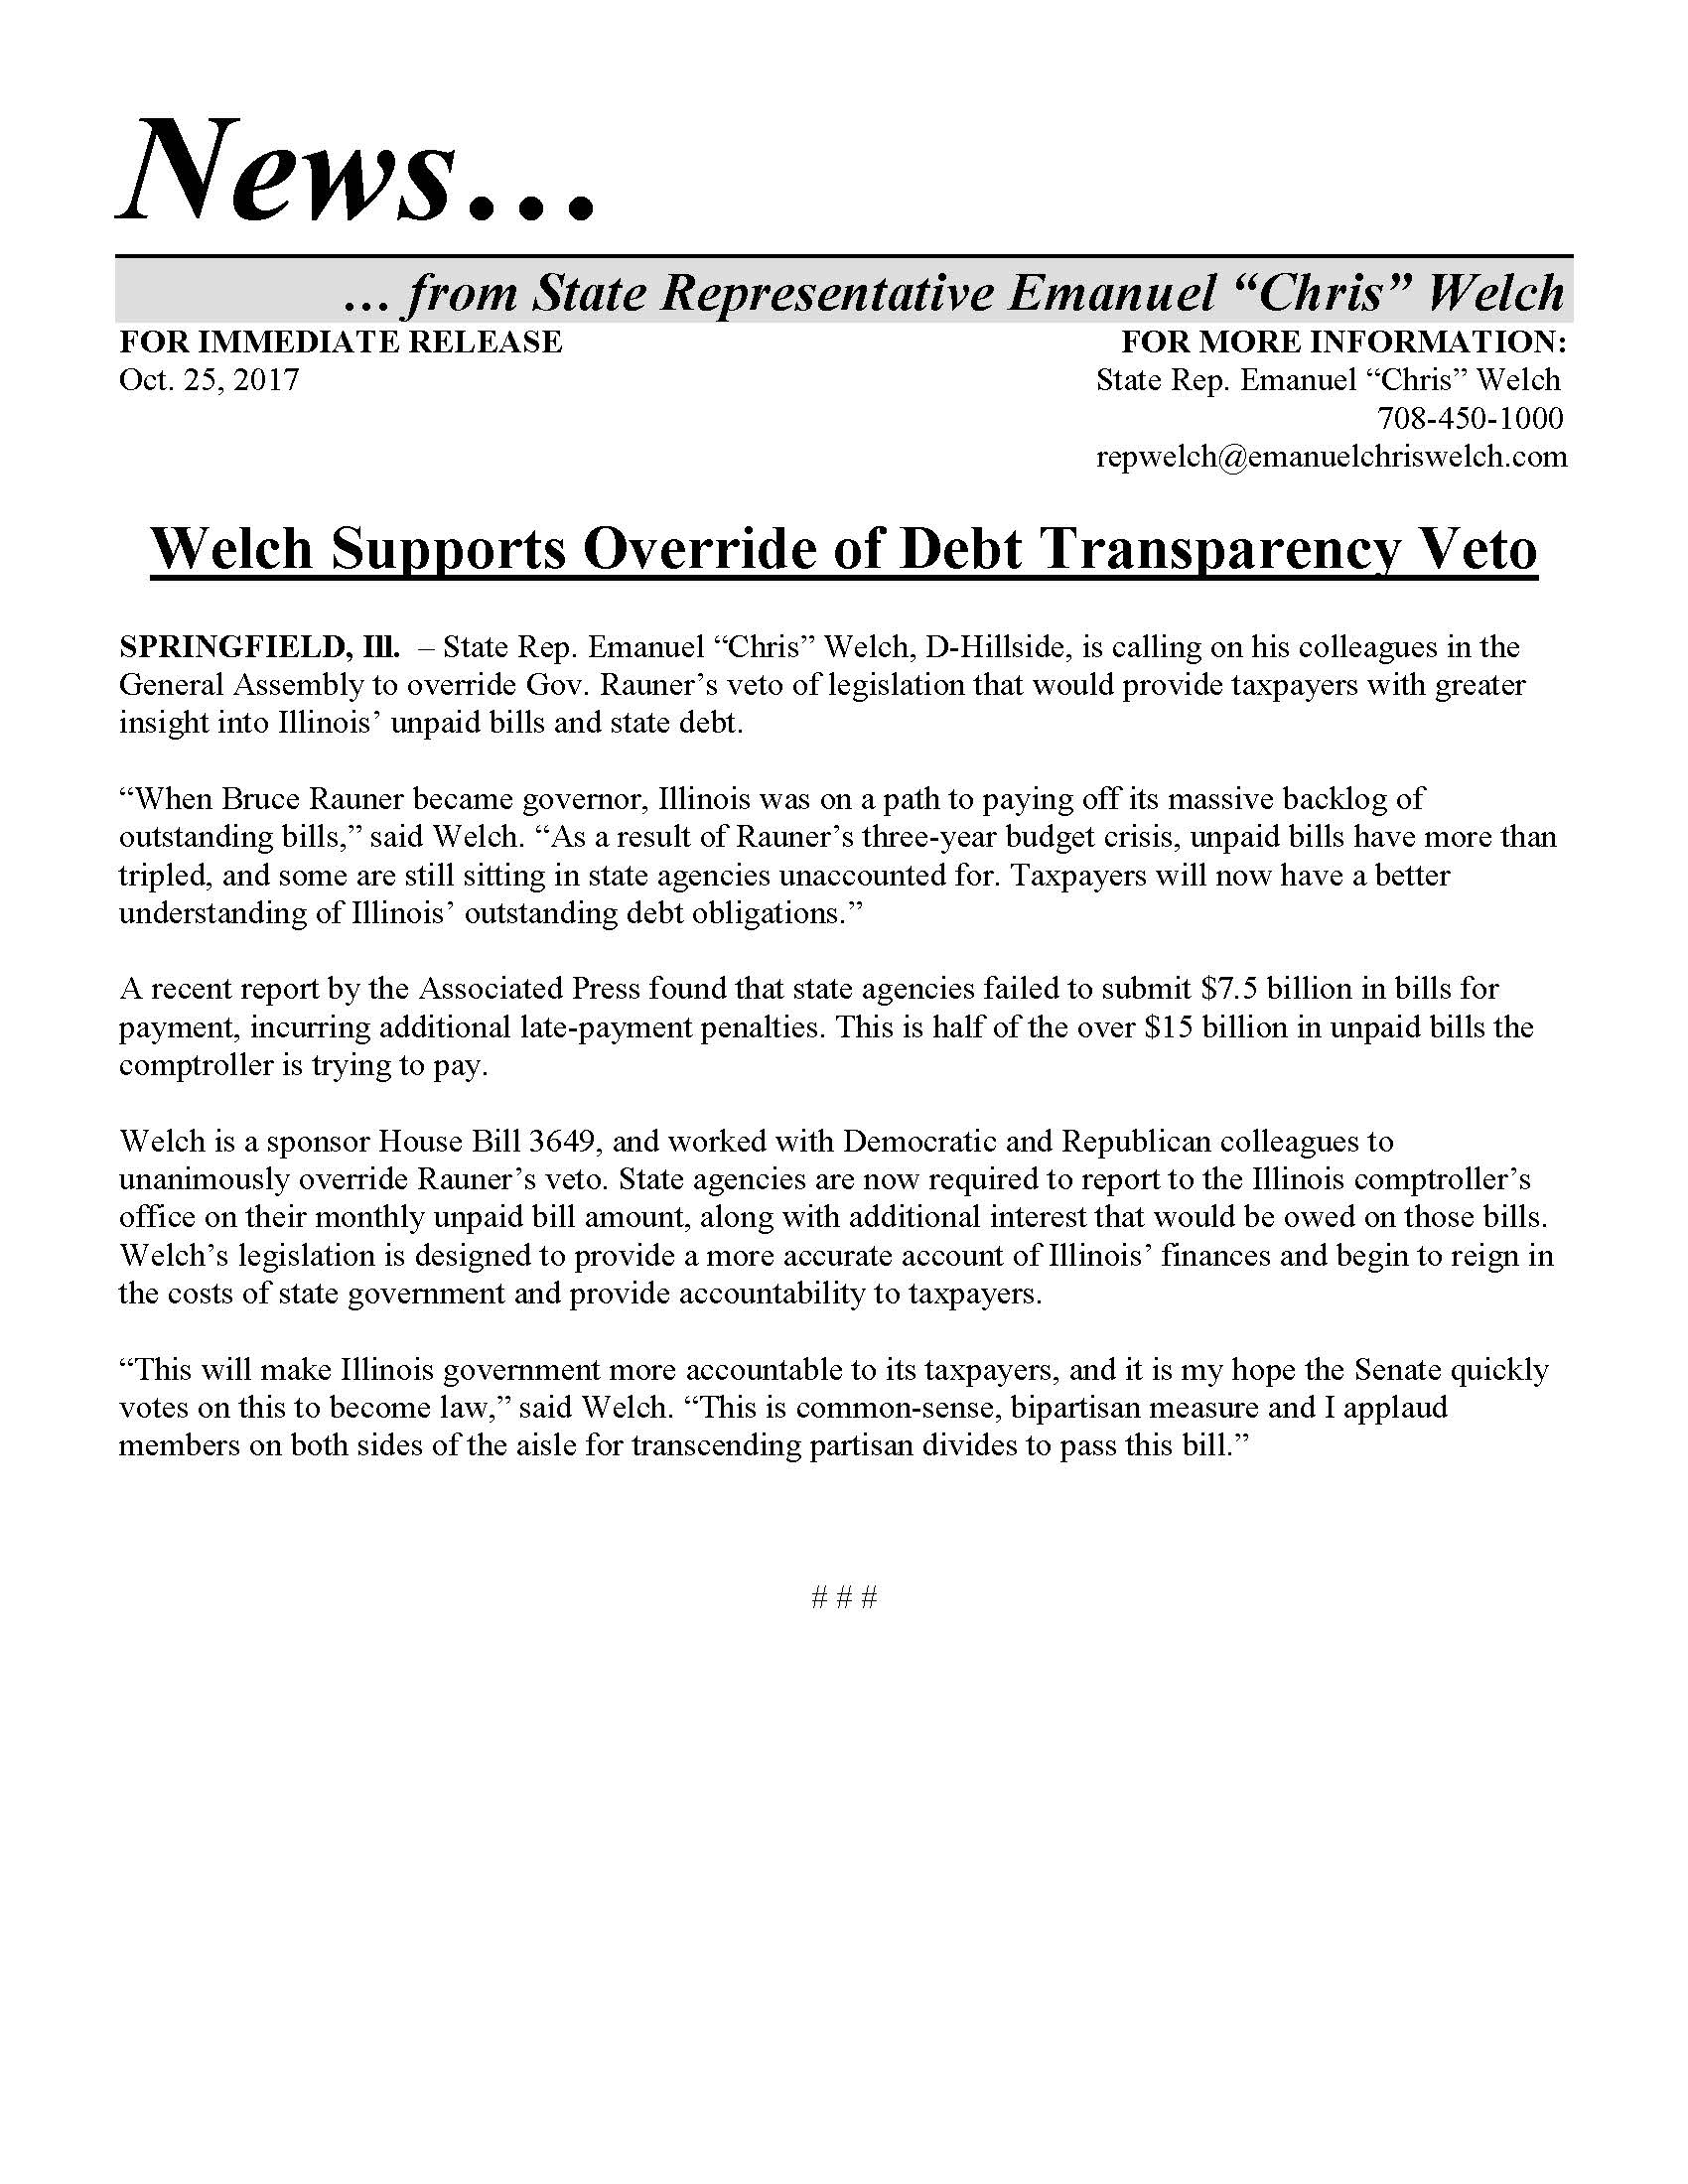 Welch Supports Override of Debt Transparency Veto  (October 25, 2017)